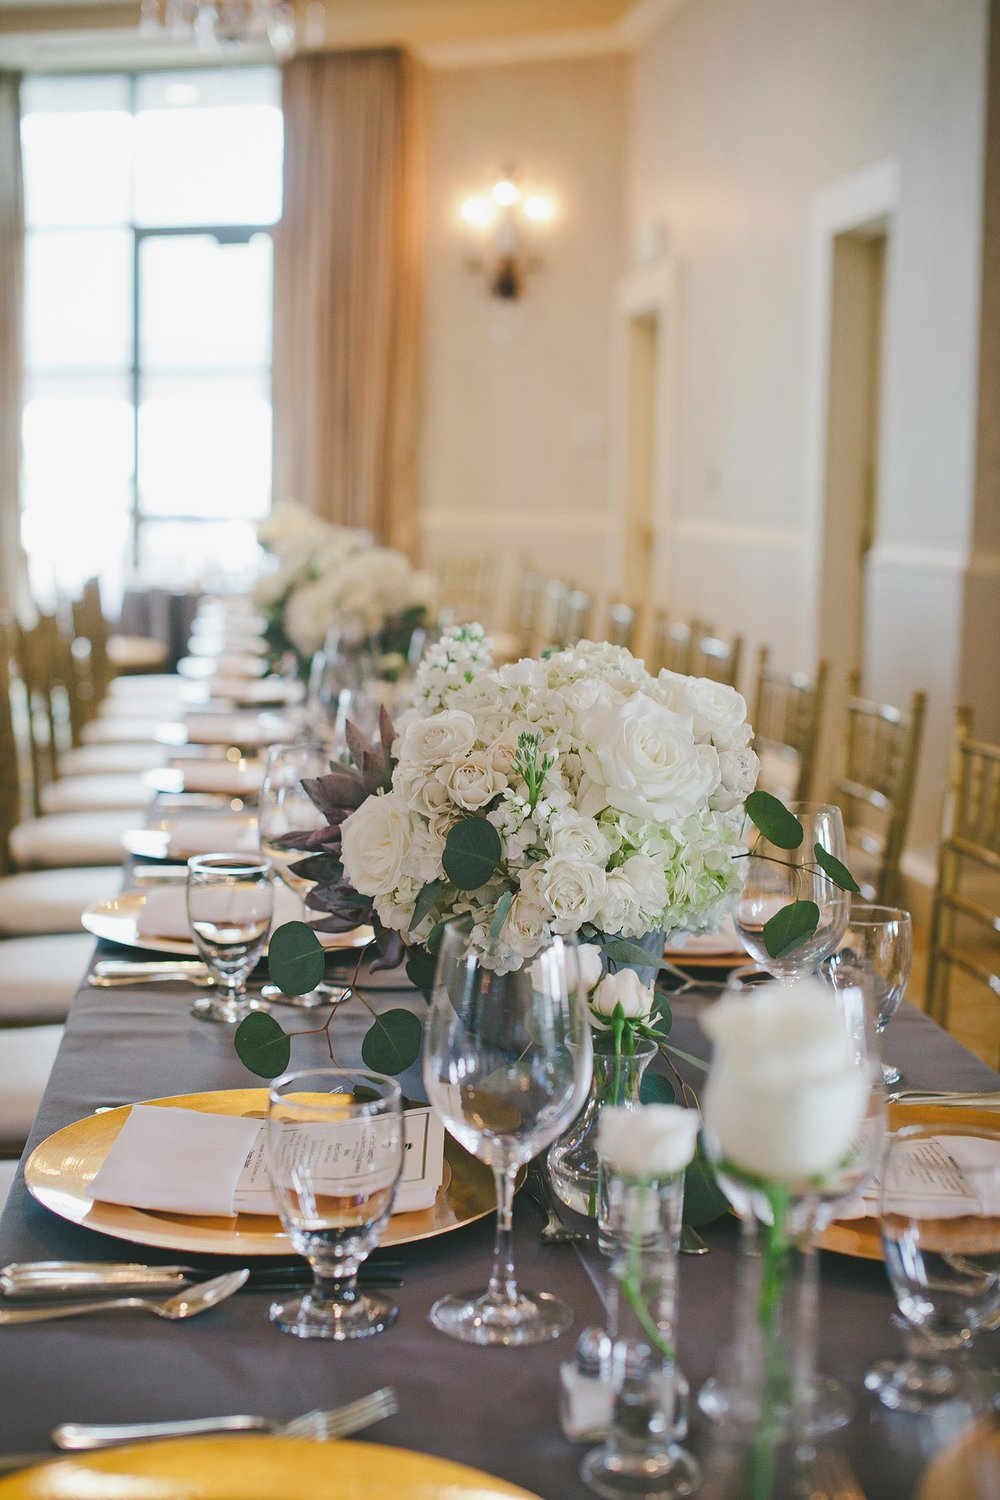 Grey linen table with white flower centerpieces and gold chargers